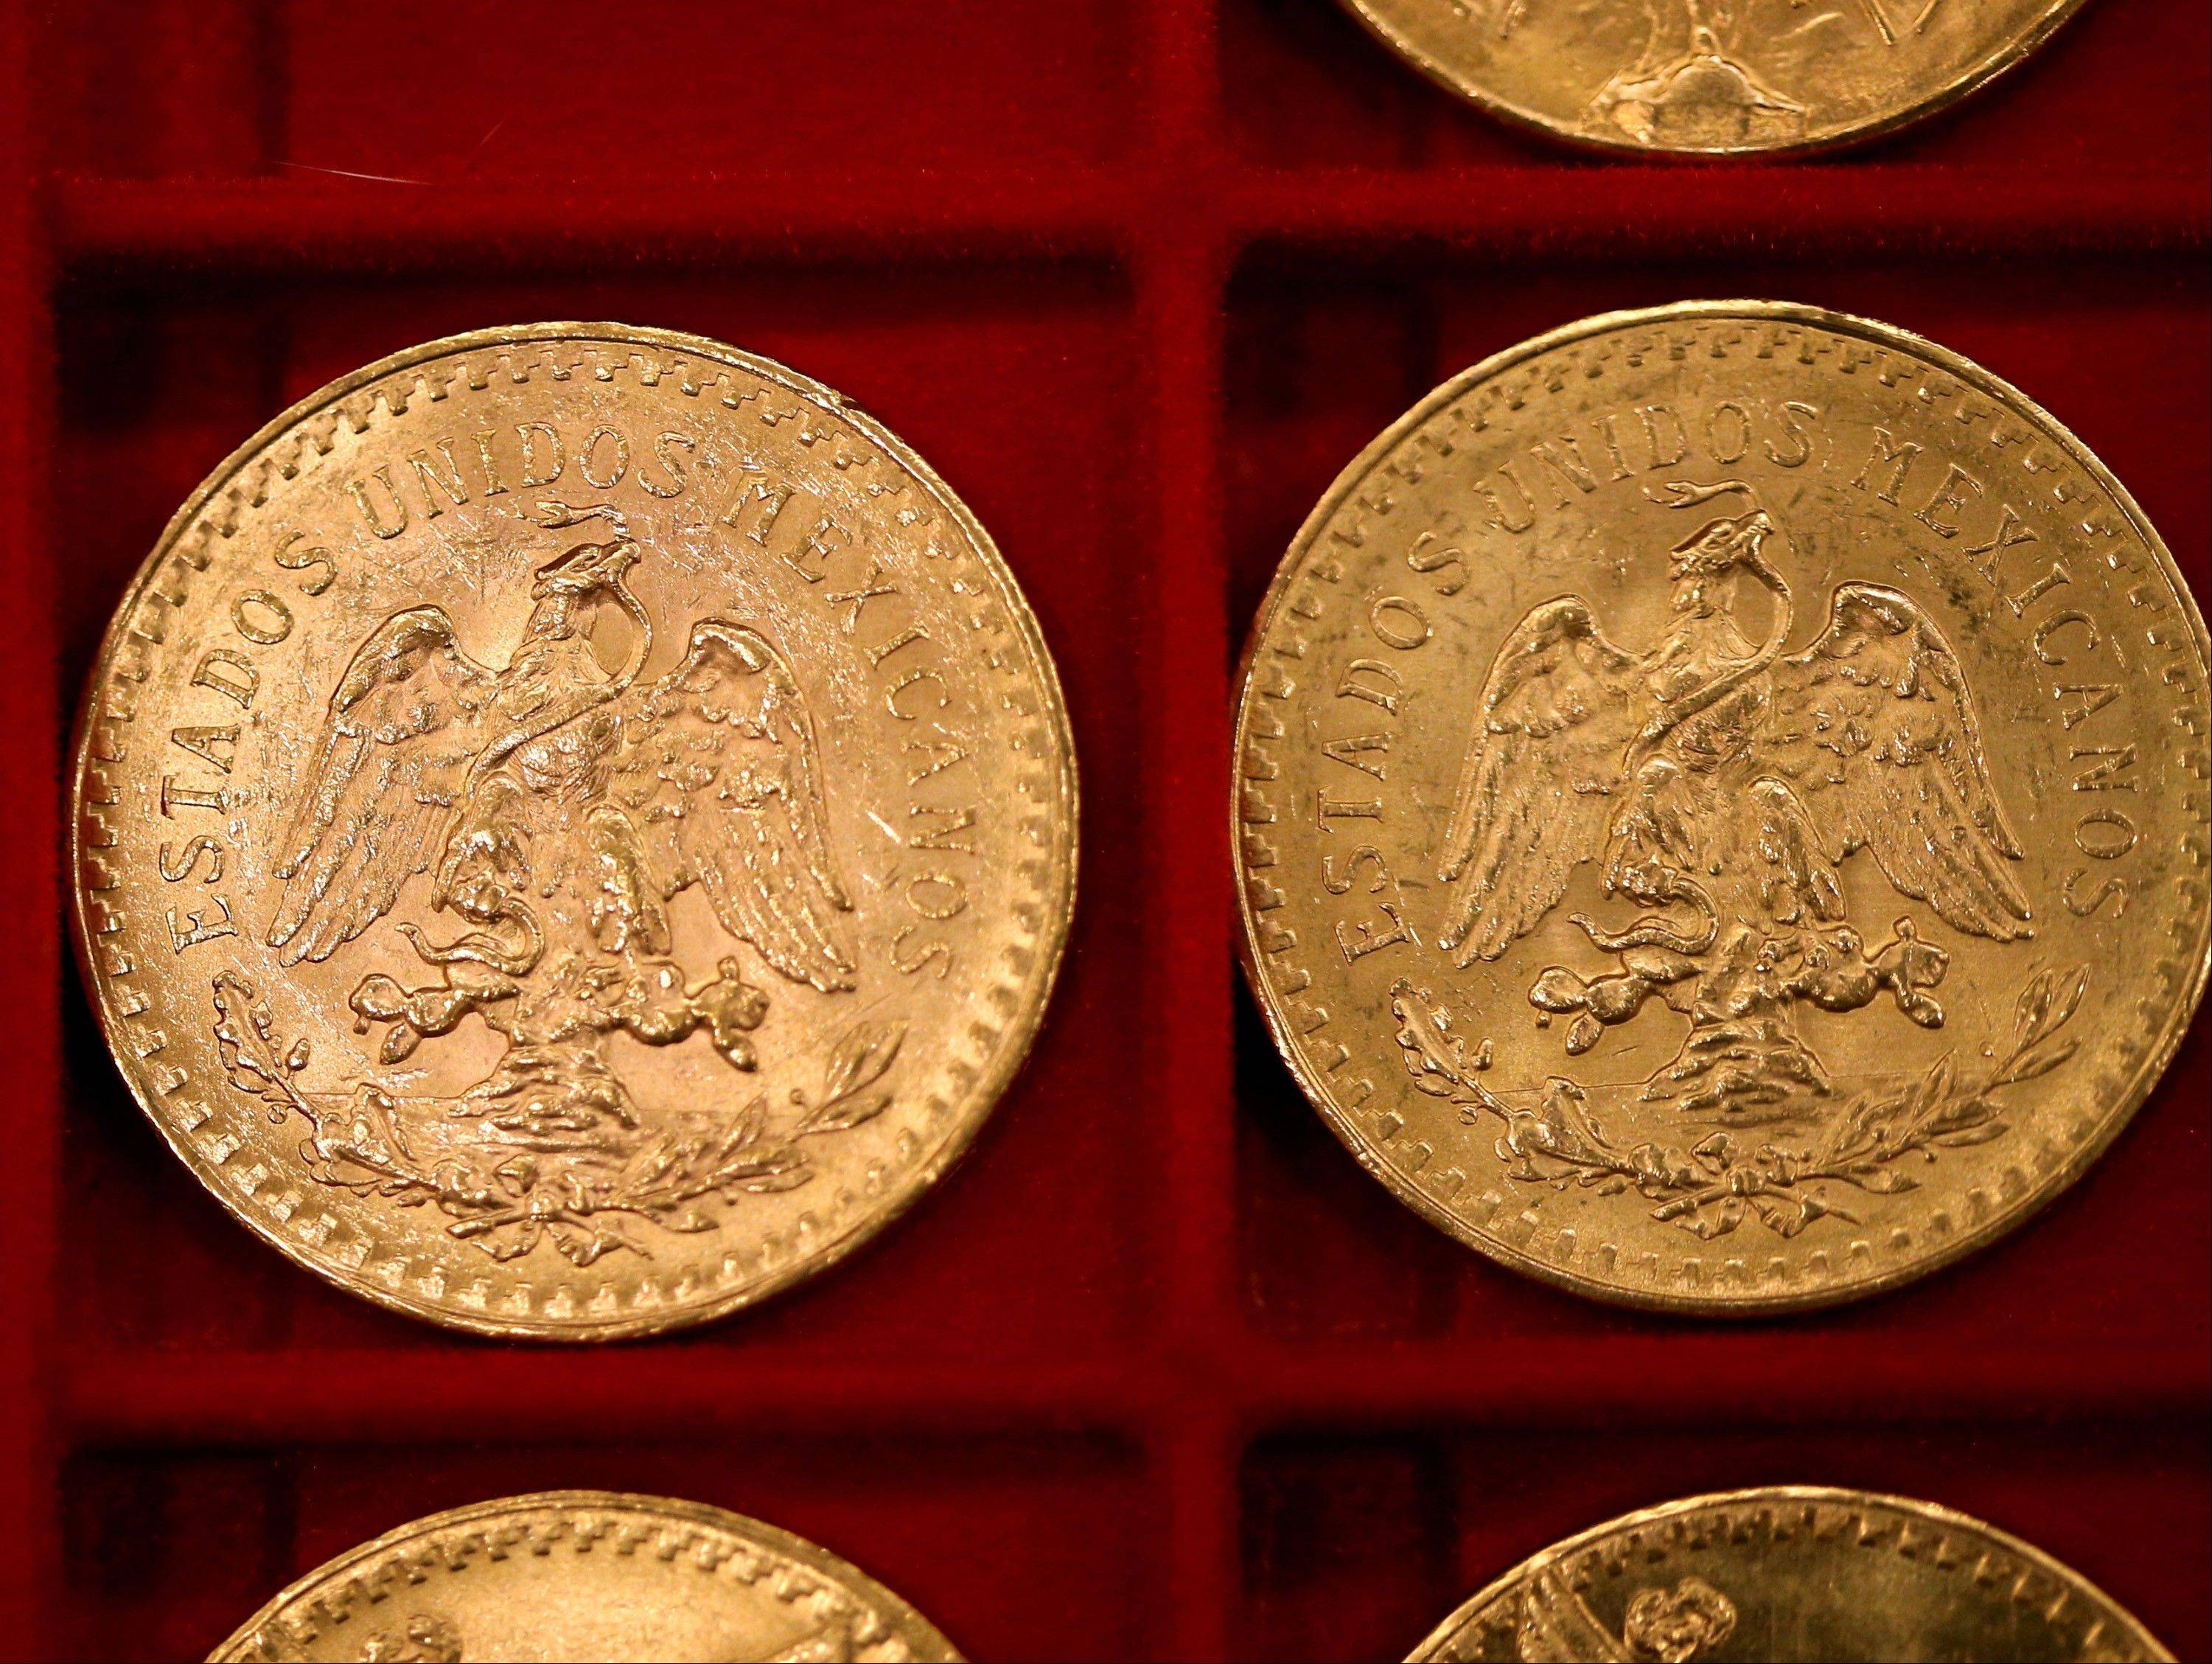 Gold Mexican 50-peso pieces that once belonged to Walter Samaszko, Jr. that were up for auction in Carson City, Nev. Samaszko, 69, died in June, 2012, leaving thousands of gold coins and bouillon in his garage.